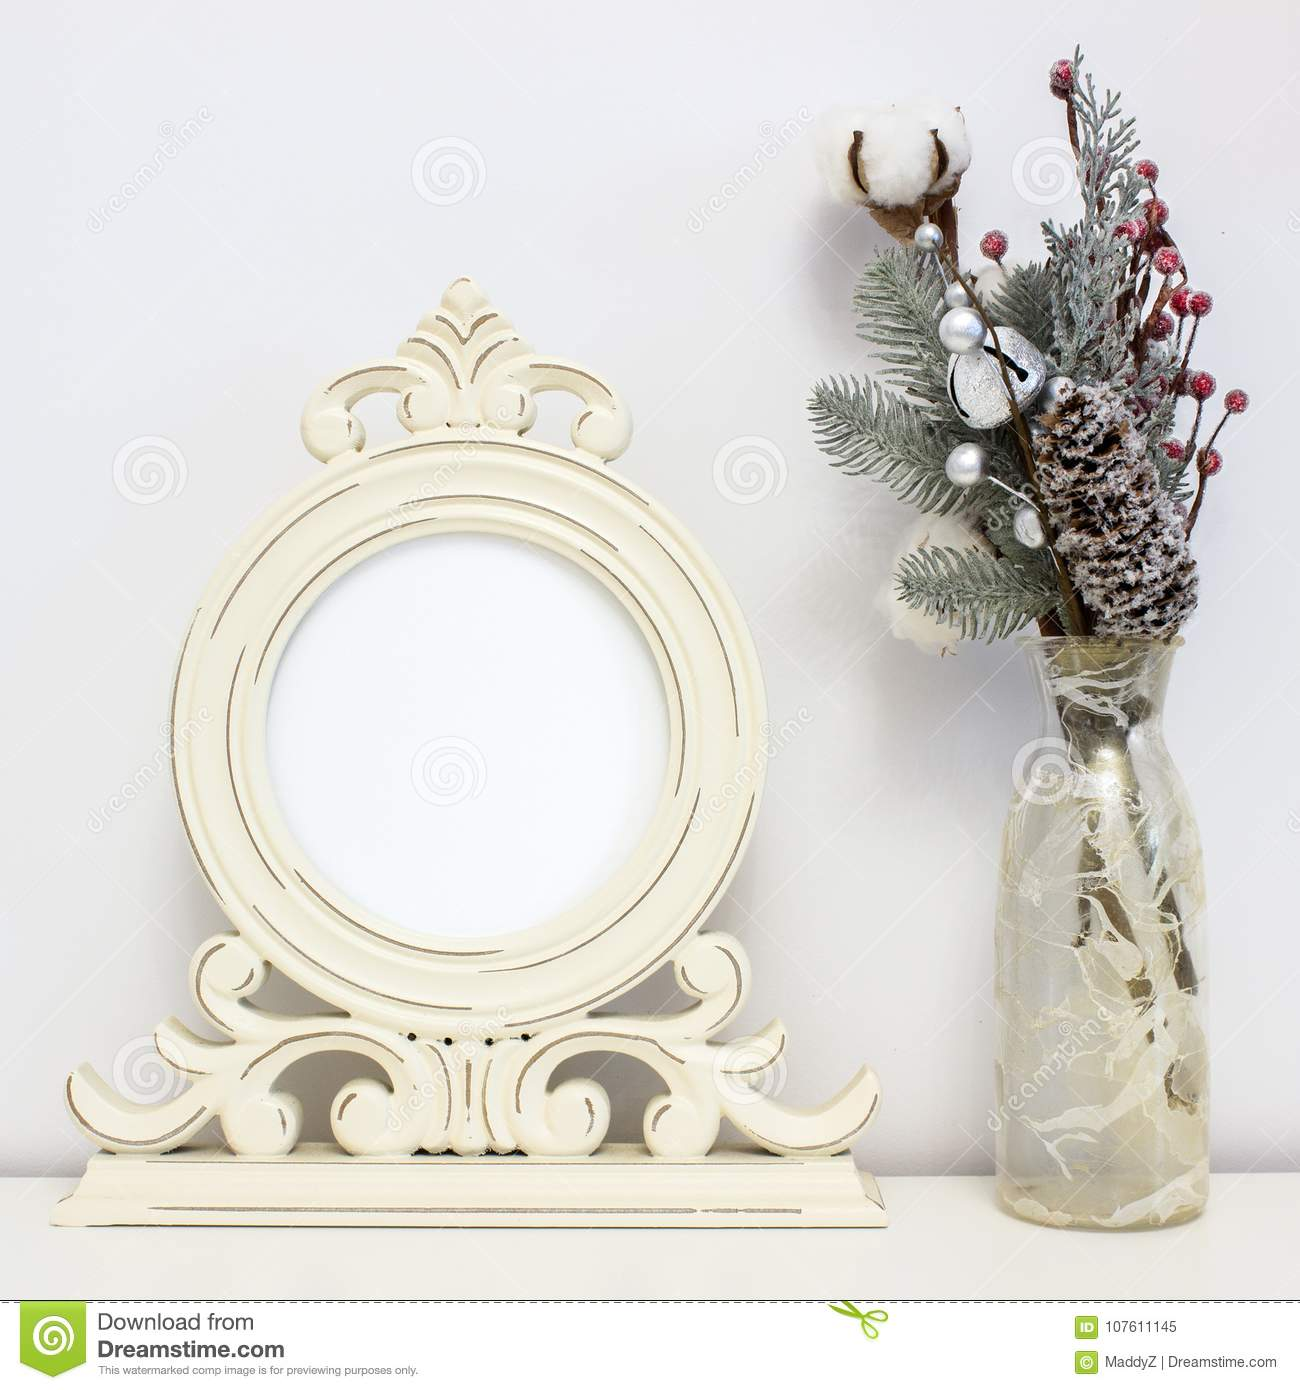 Wooden round frame and winter decorations. White clear Mock-up for art work presentations